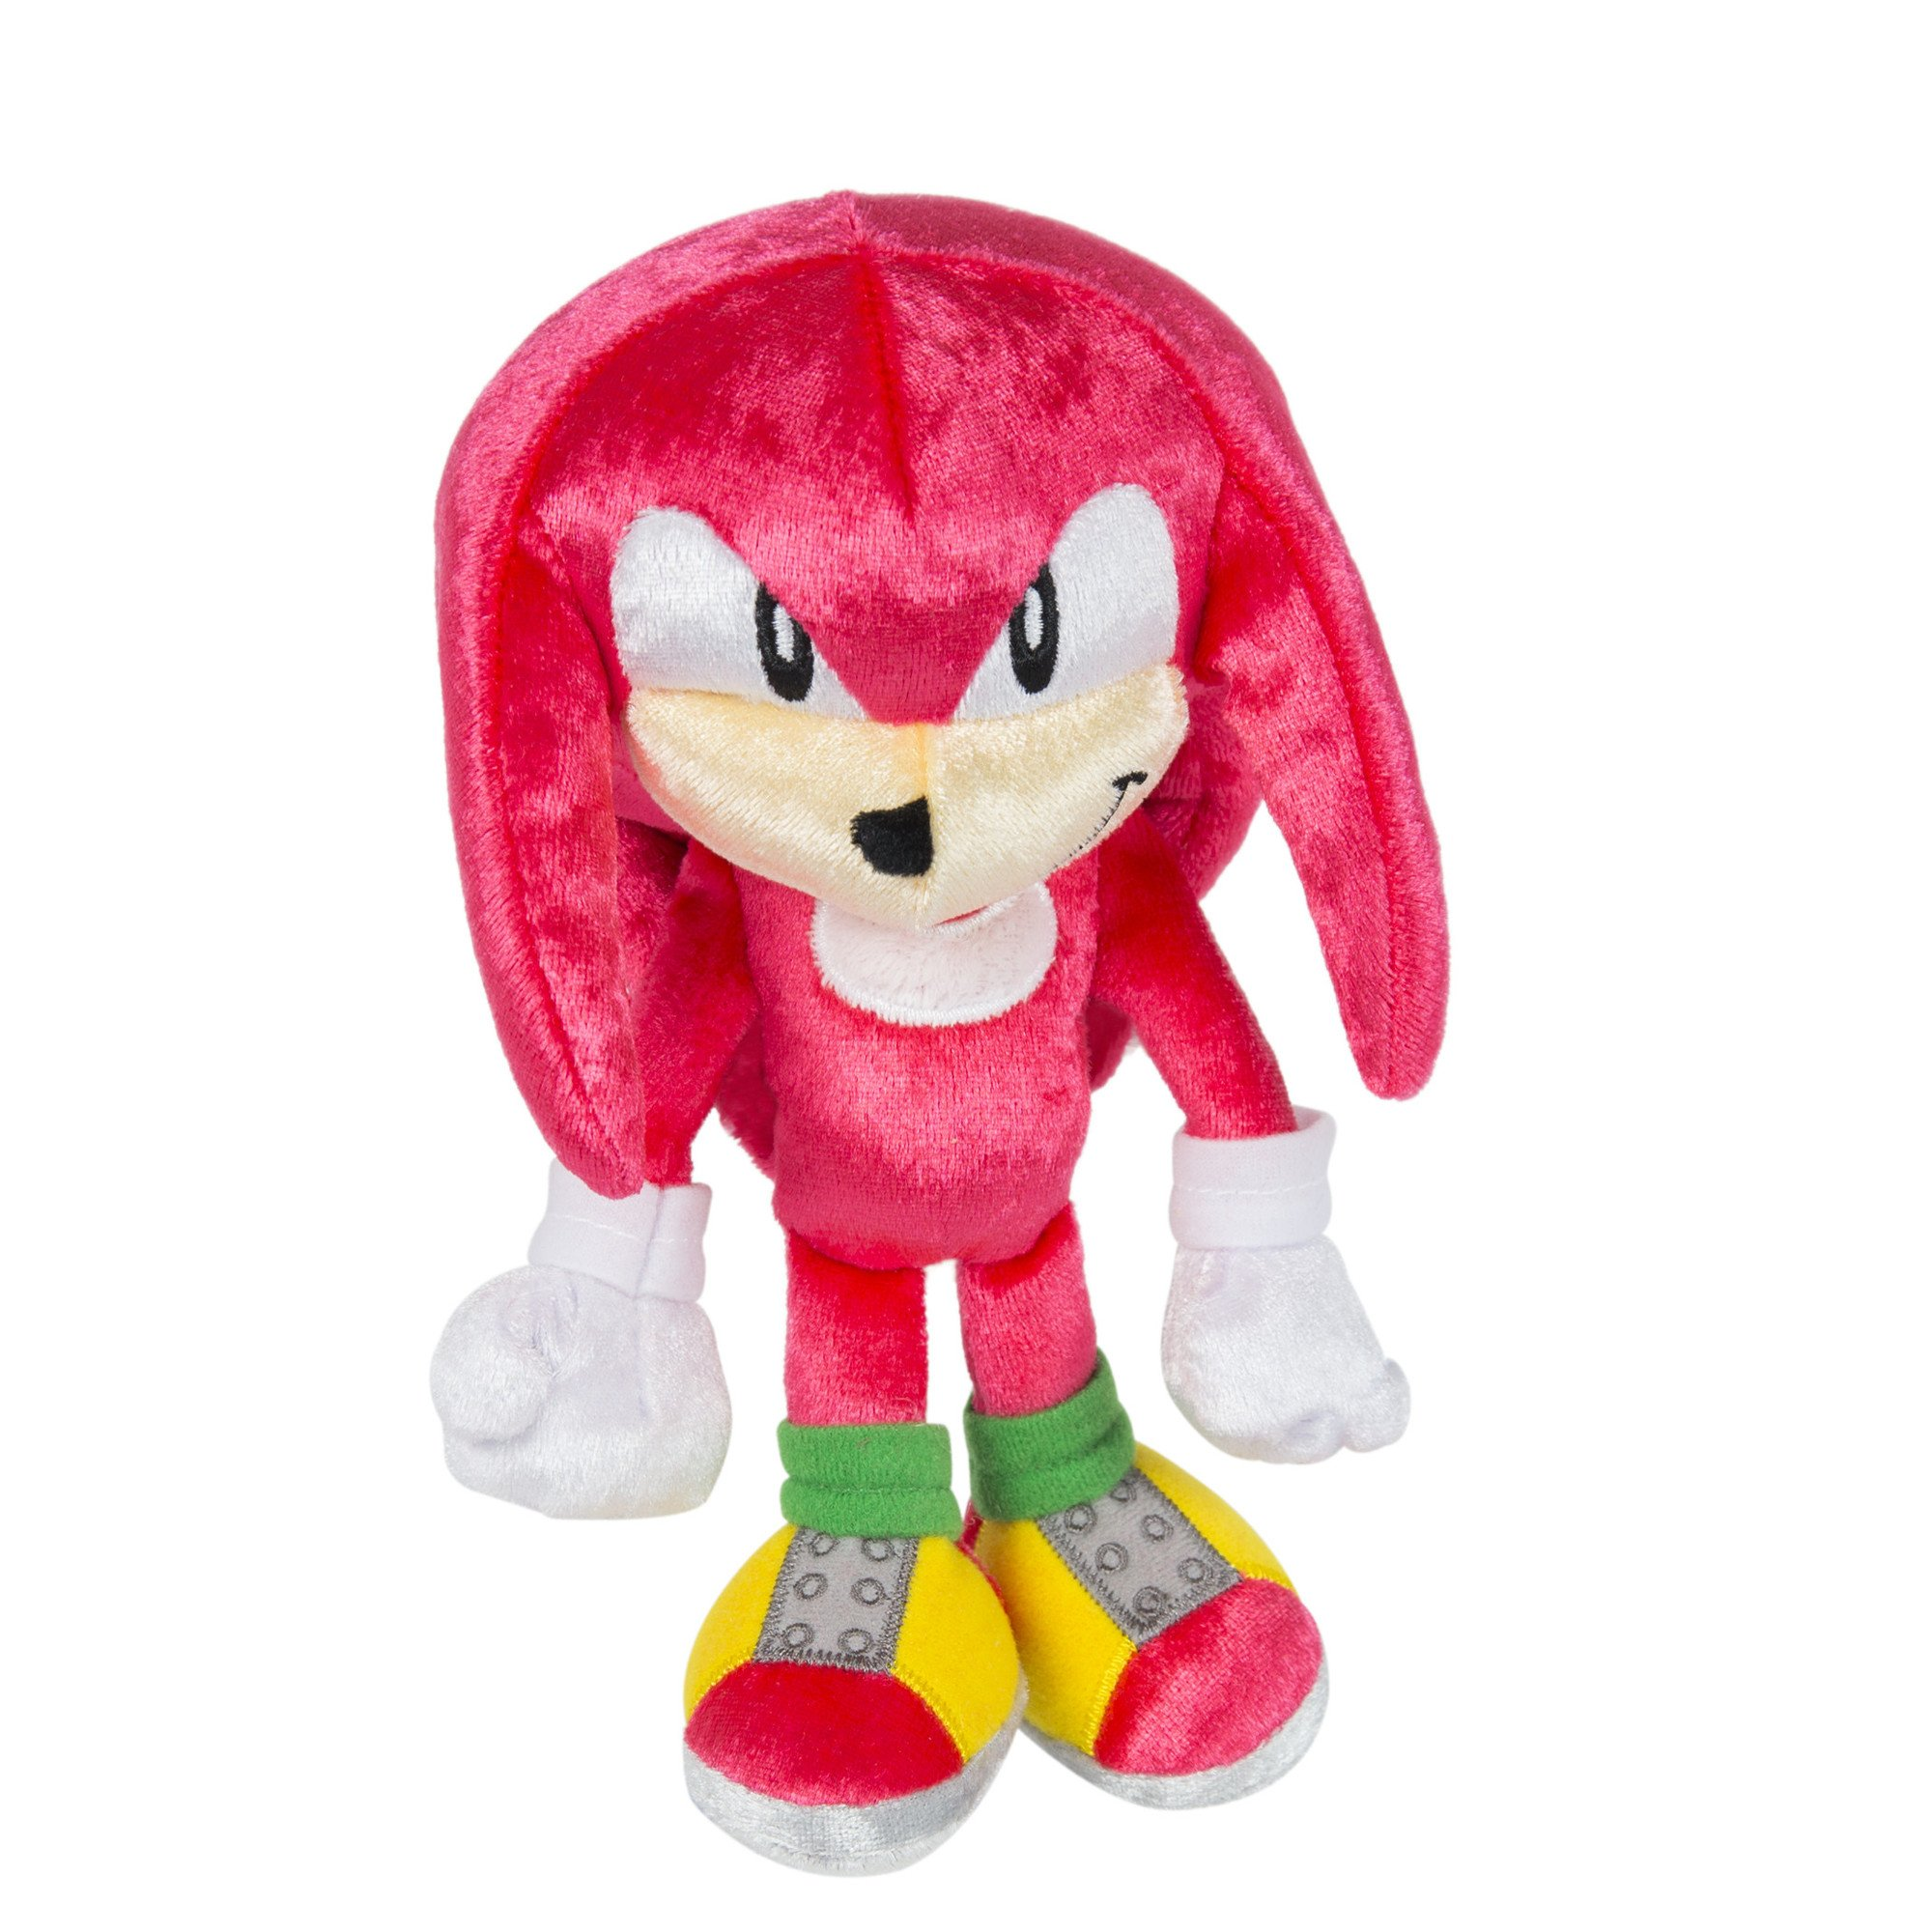 TOMY Sonic 25th Anniversary Knuckles 1991 Plush, Small by TOMY